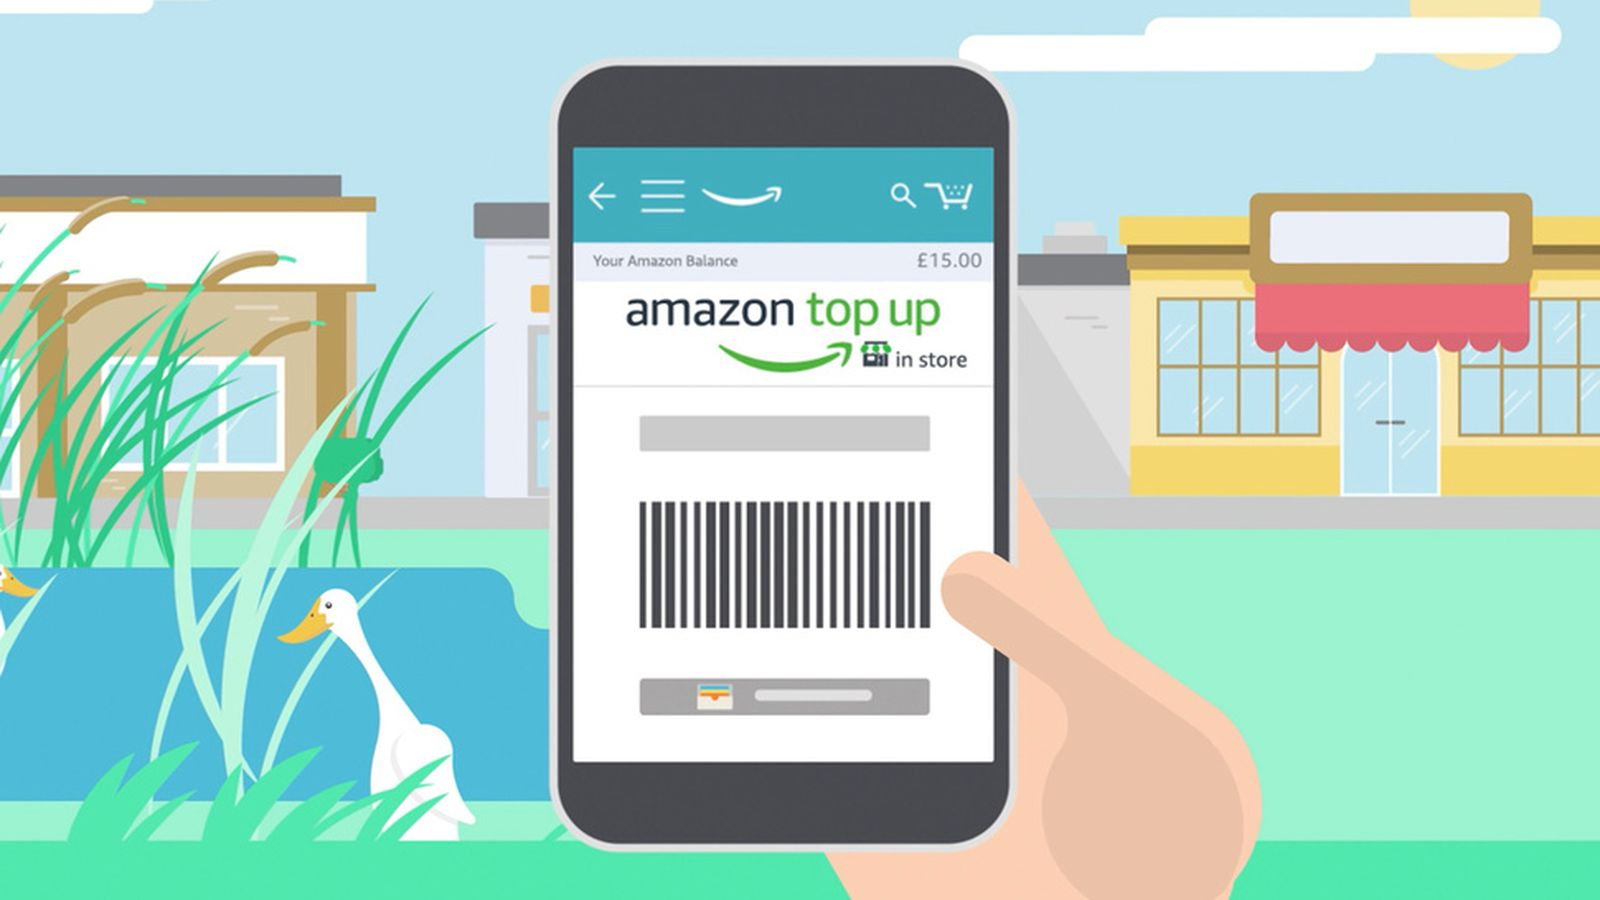 Amazon Cash comes to the UK, but under a different name